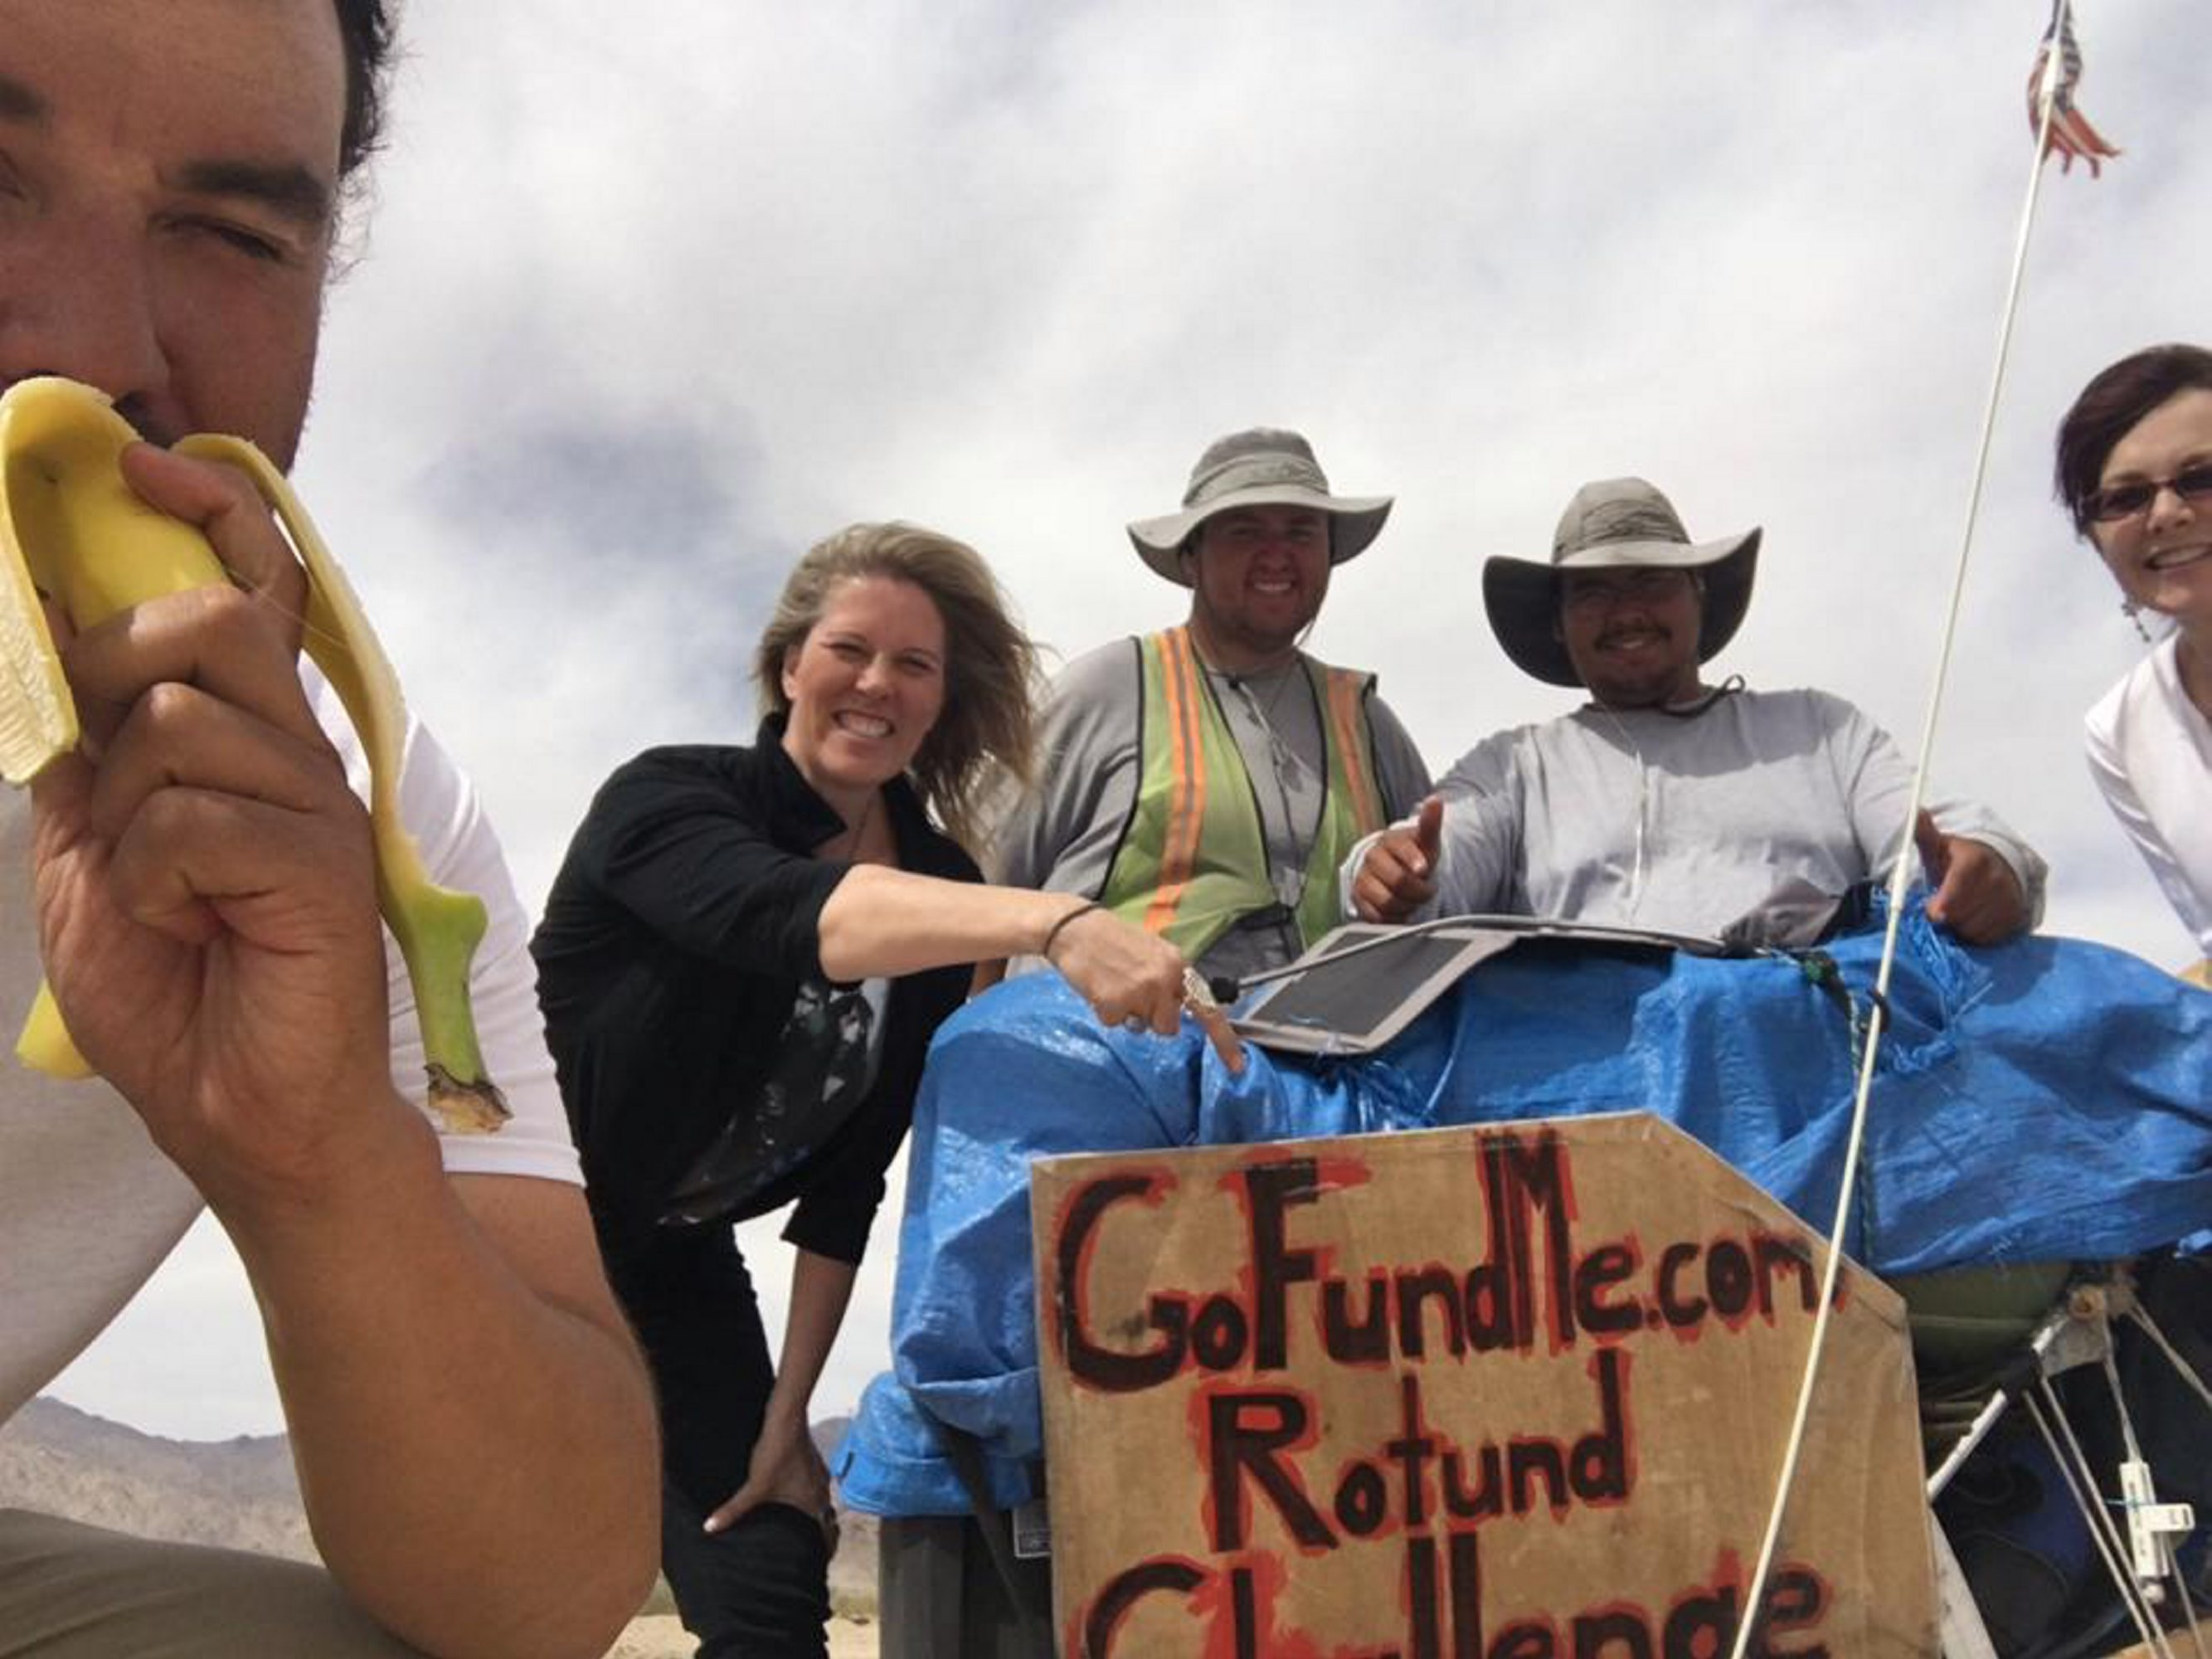 Lisa Sievenpiper Davis, second from left, and her friend Eden Mauren Becket, right, brought food and water to the three Buffalo walkers. Joe Cooke, left, dug into the bananas while Jason Rogers, center, and Chris Cooke, second from right, posed for the photo.